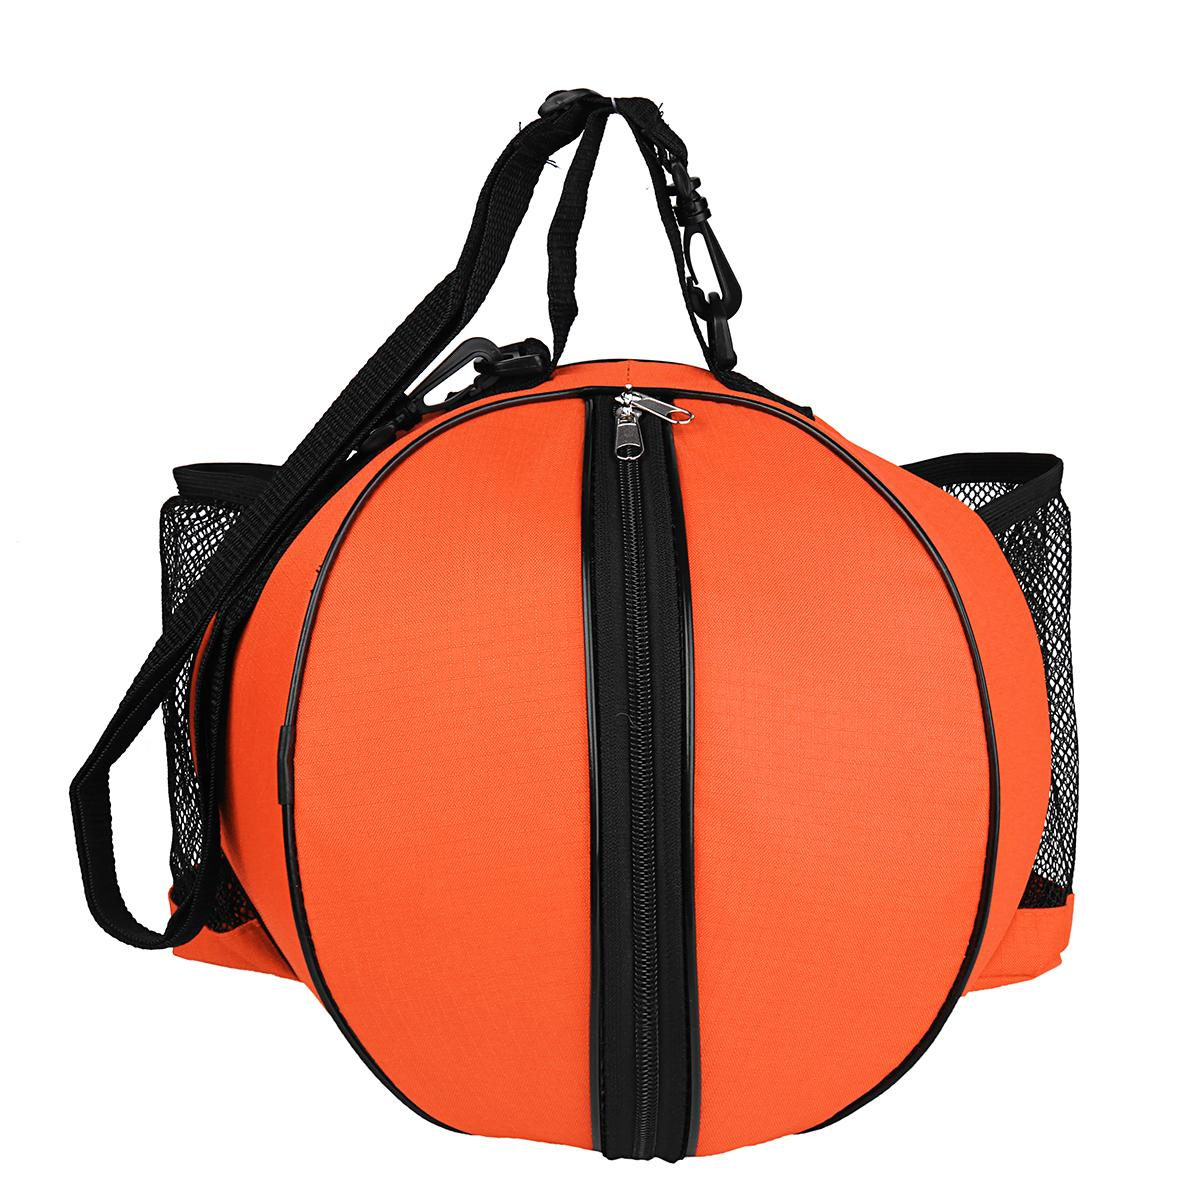 Basketball For Sale Game Online Brands Prices Bola Basket Molten Mikasa Spalding Gt7 Equipment Bags